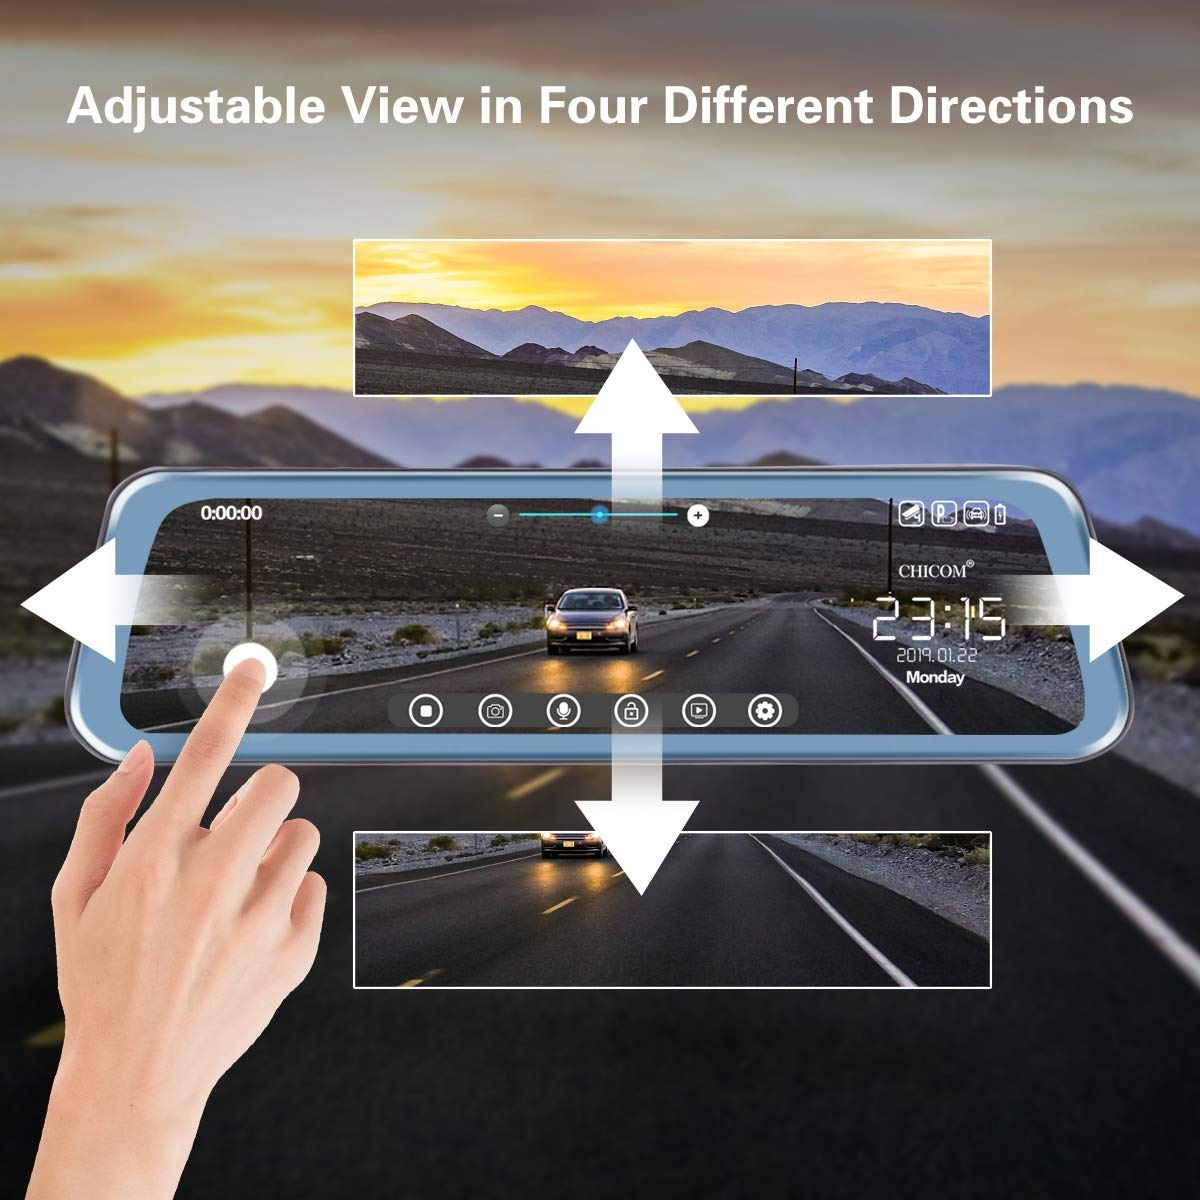 Mirror Dash Cam 9.66'' Dual Lens Full Touch Screen Stream Media Rear View Mirror Camera Made of Aluminum Alloy, 1080P 170°Front and 1080P 140°Backup Camera with Parking Monitor and G-Sensor by CHICOM (Image #2)